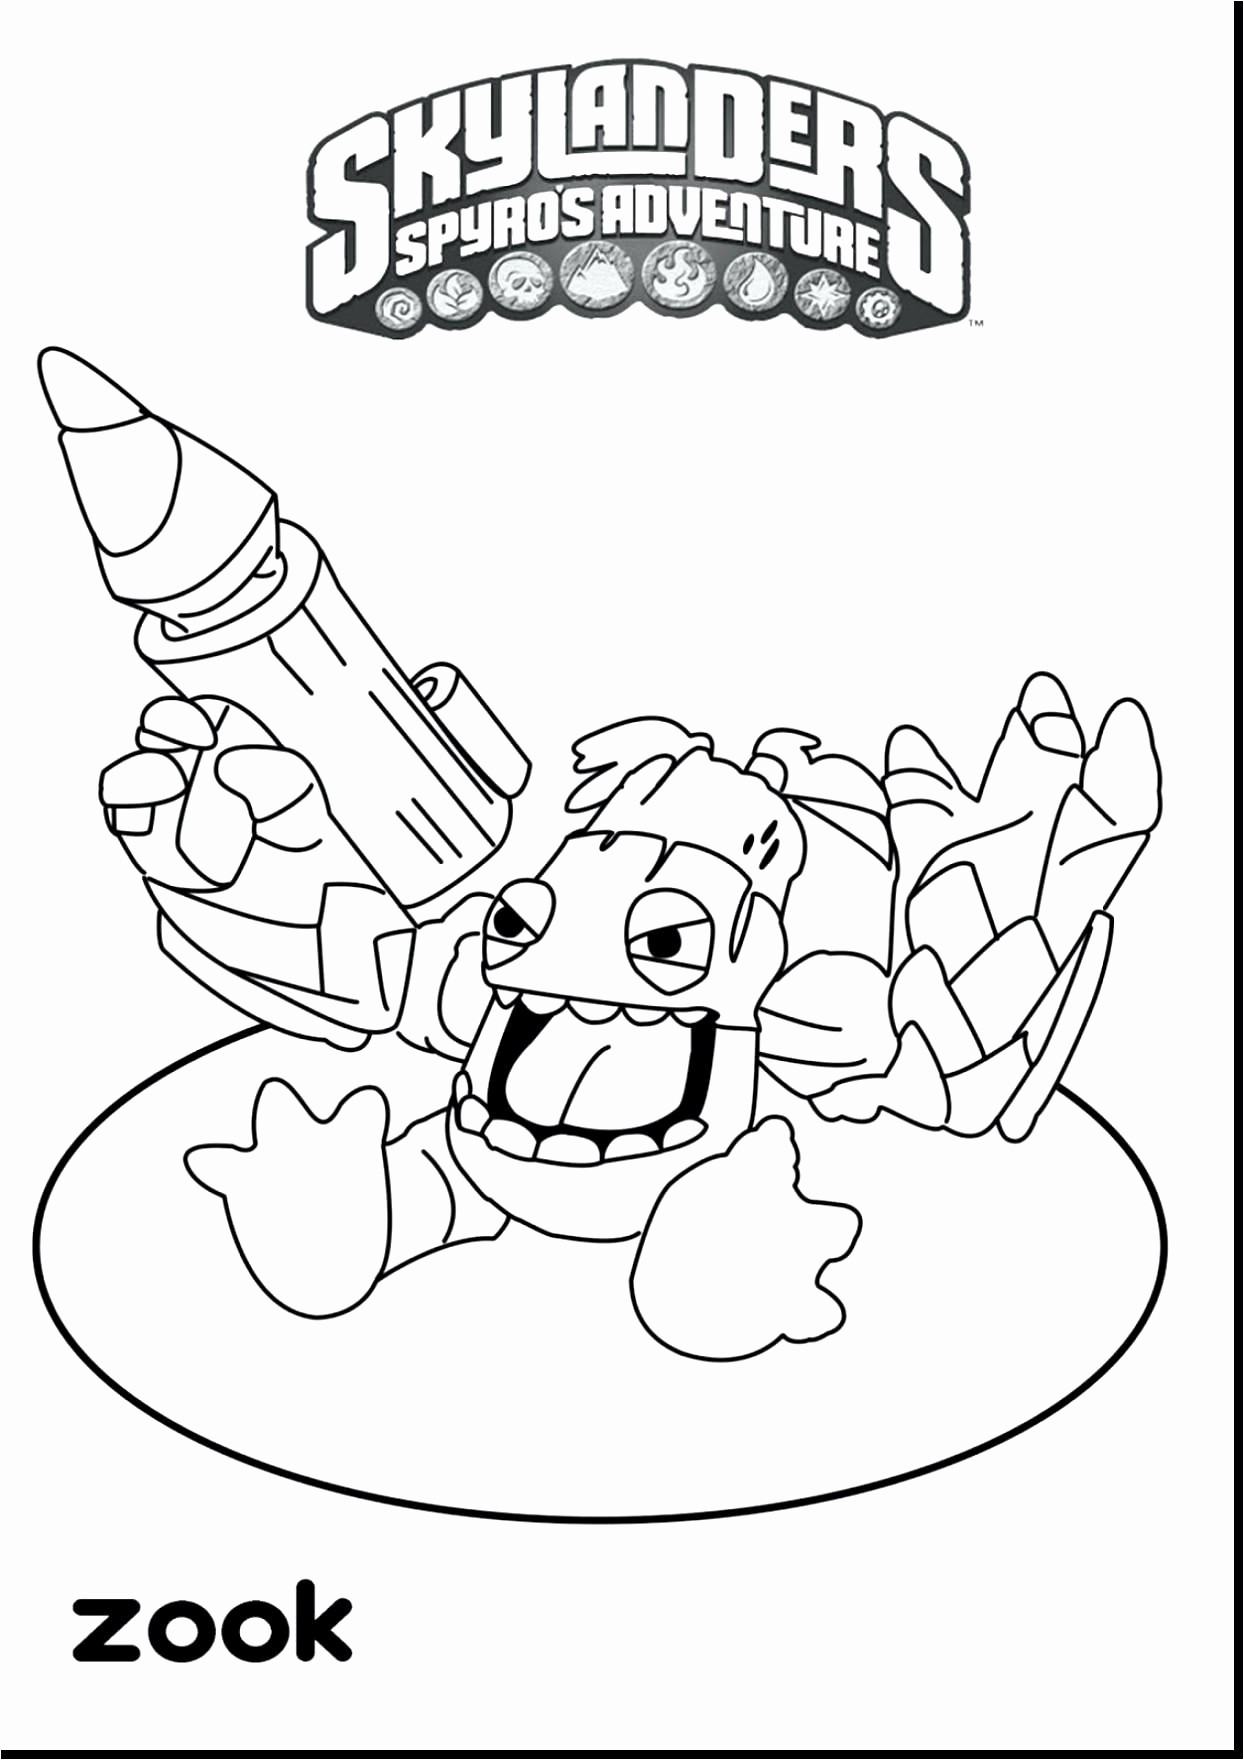 games coloring pages Collection-Kids Color Pages Autumn Coloring Pages New Preschool Coloring Pages Fresh Fall 4-c